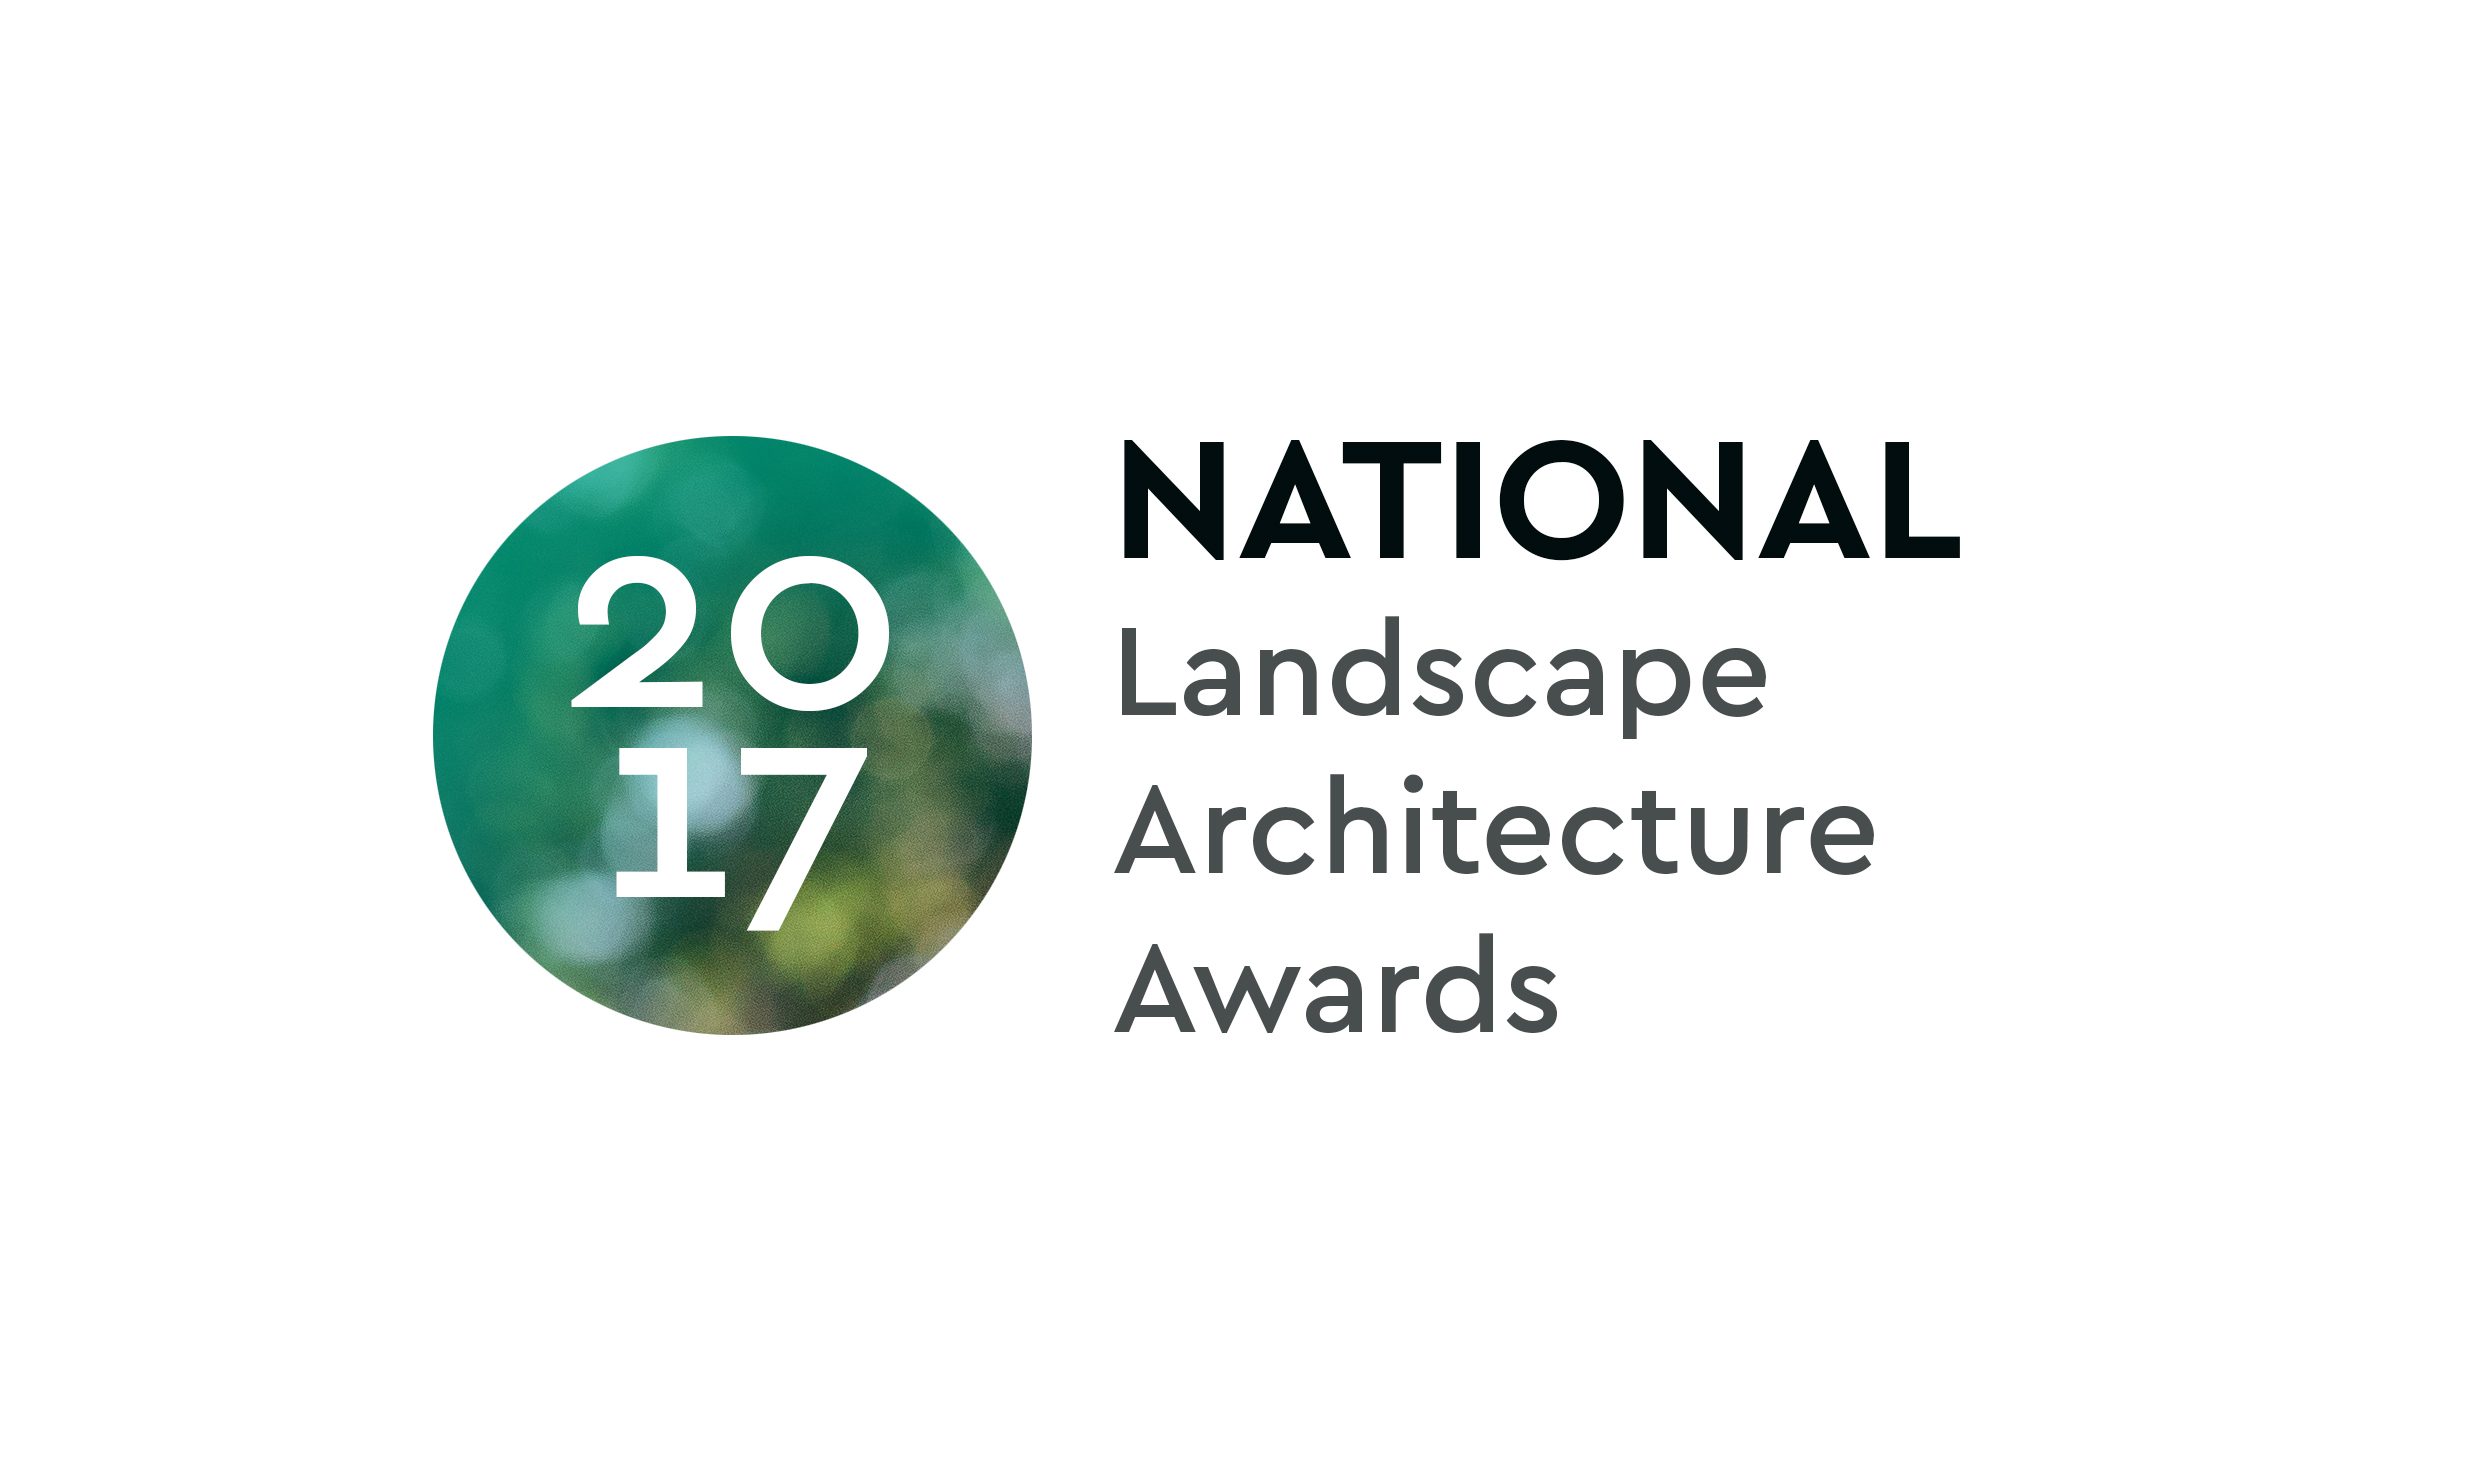 2017 National Landscape Architecture Awards